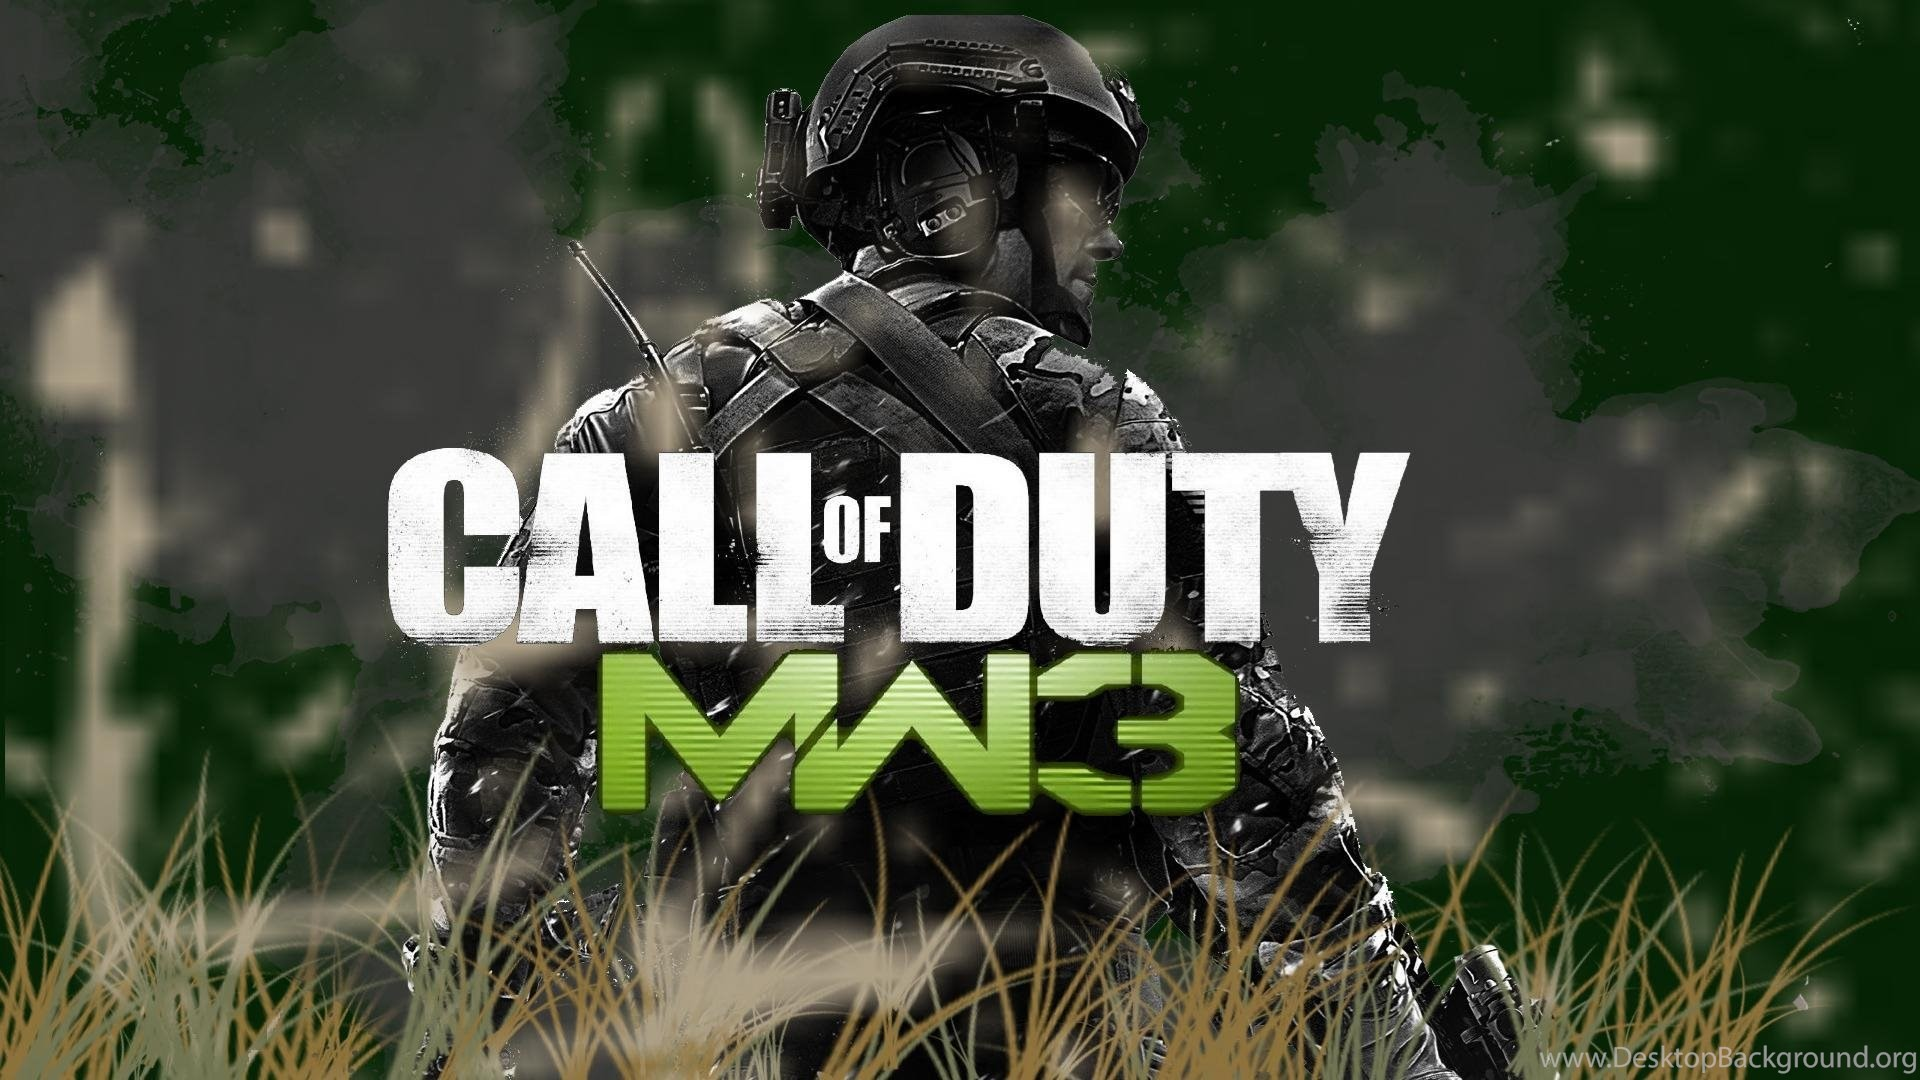 Call of duty mw3 wallpapers 79 images - Mw3 wallpaper ...